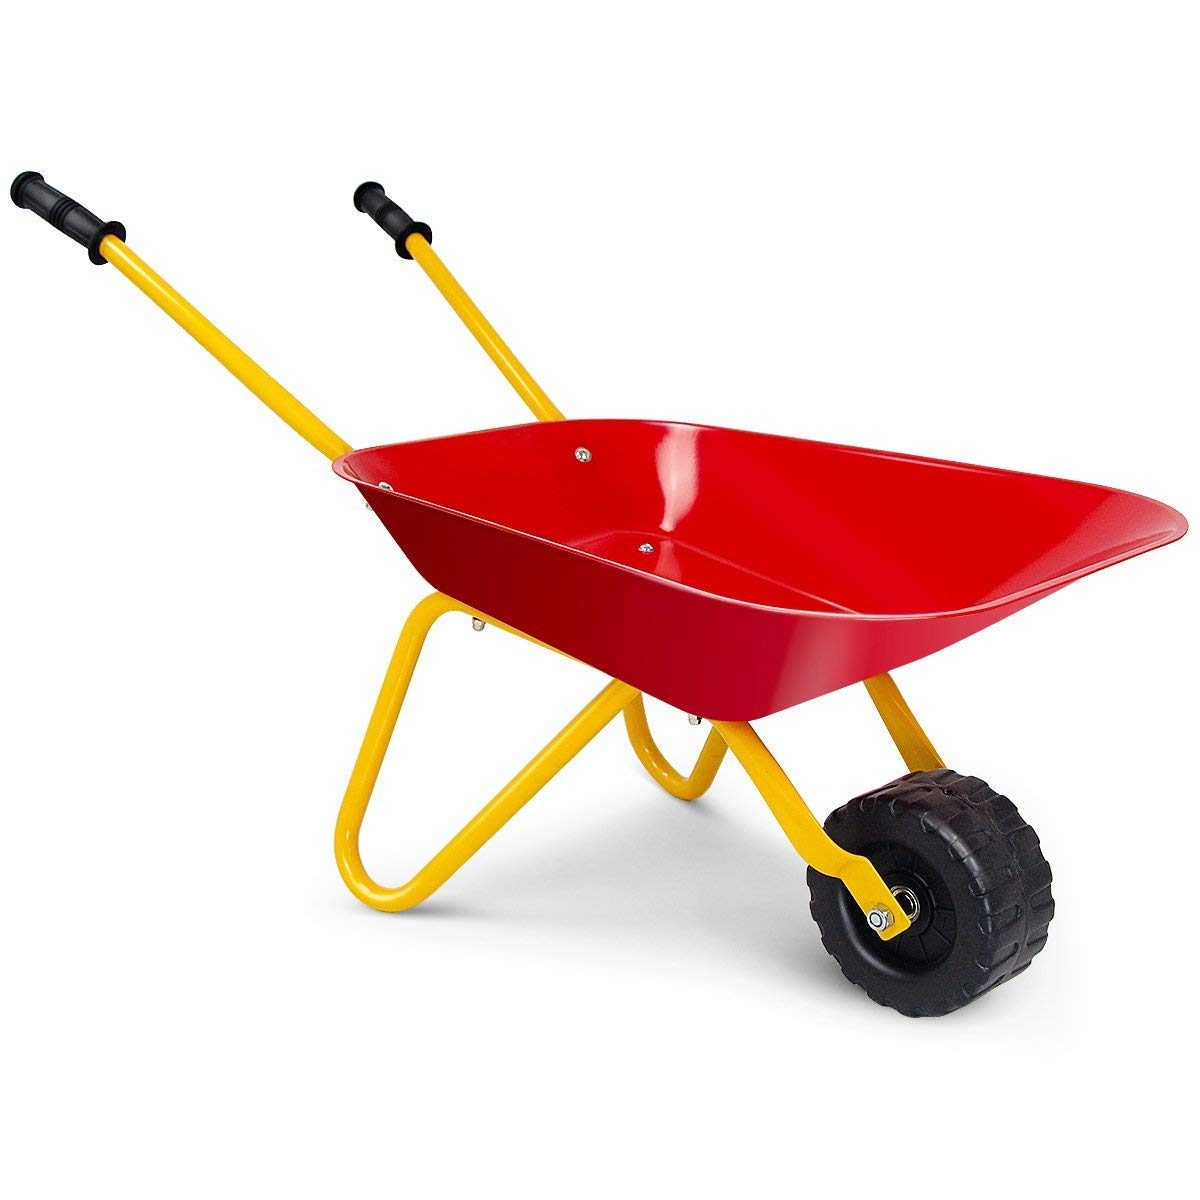 HAPPYGRILL Kids Wheelbarrow, Yard Rover Steel Tray, Metal Construction Toys Kart, Tote Dirt/Leaves/Tools in Garden for Toddlers, Kids Play Tools (red)